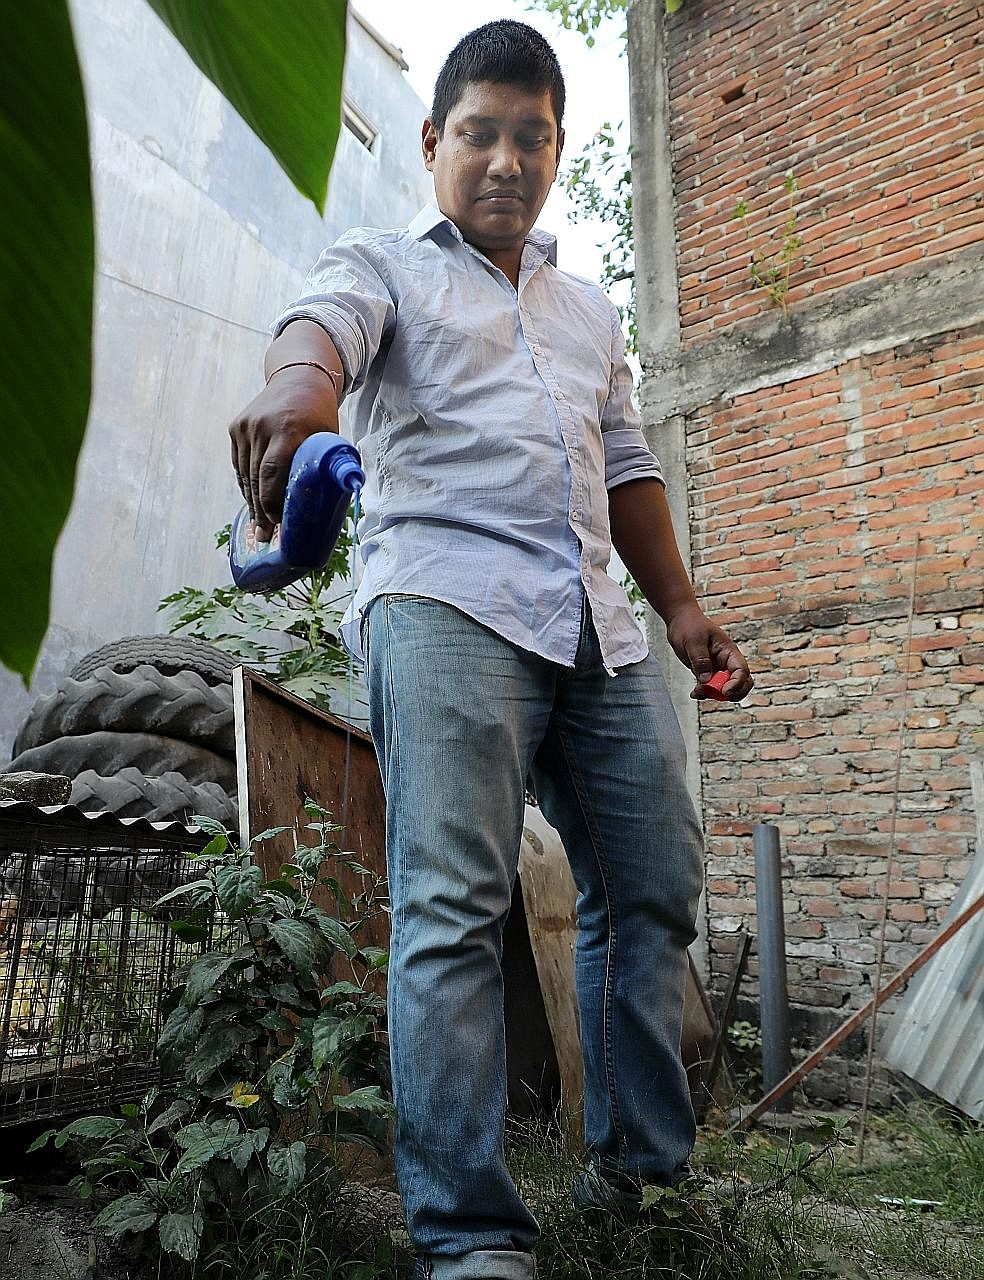 Mr Rana pouring cleaning detergent into a pool of stagnant water at the back of his home, as a preventive measure against mosquito breeding.